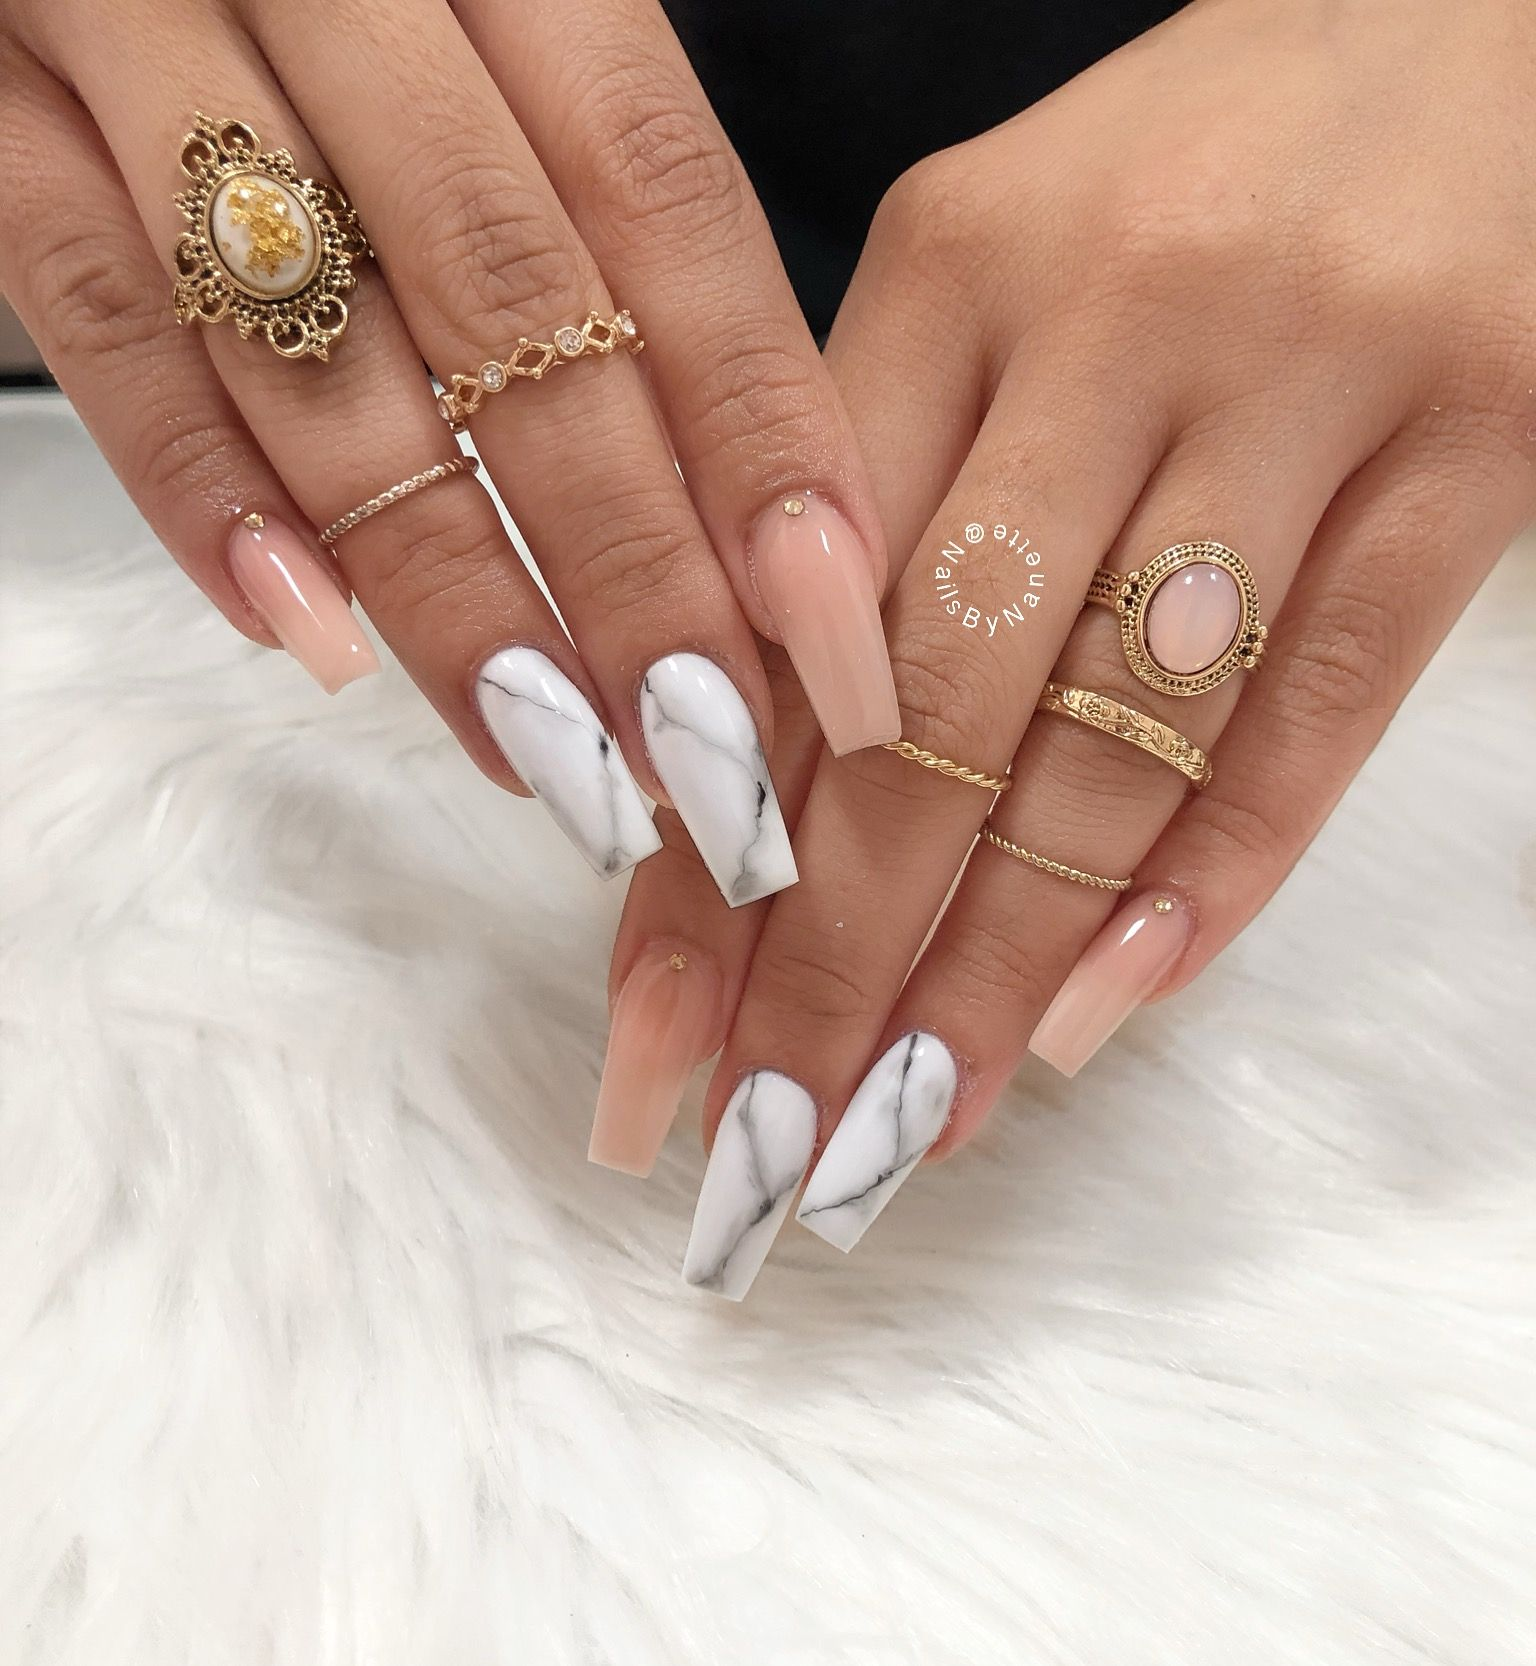 Nude Nails, Long Nails, Coffin Nails, Marble Nails -5851